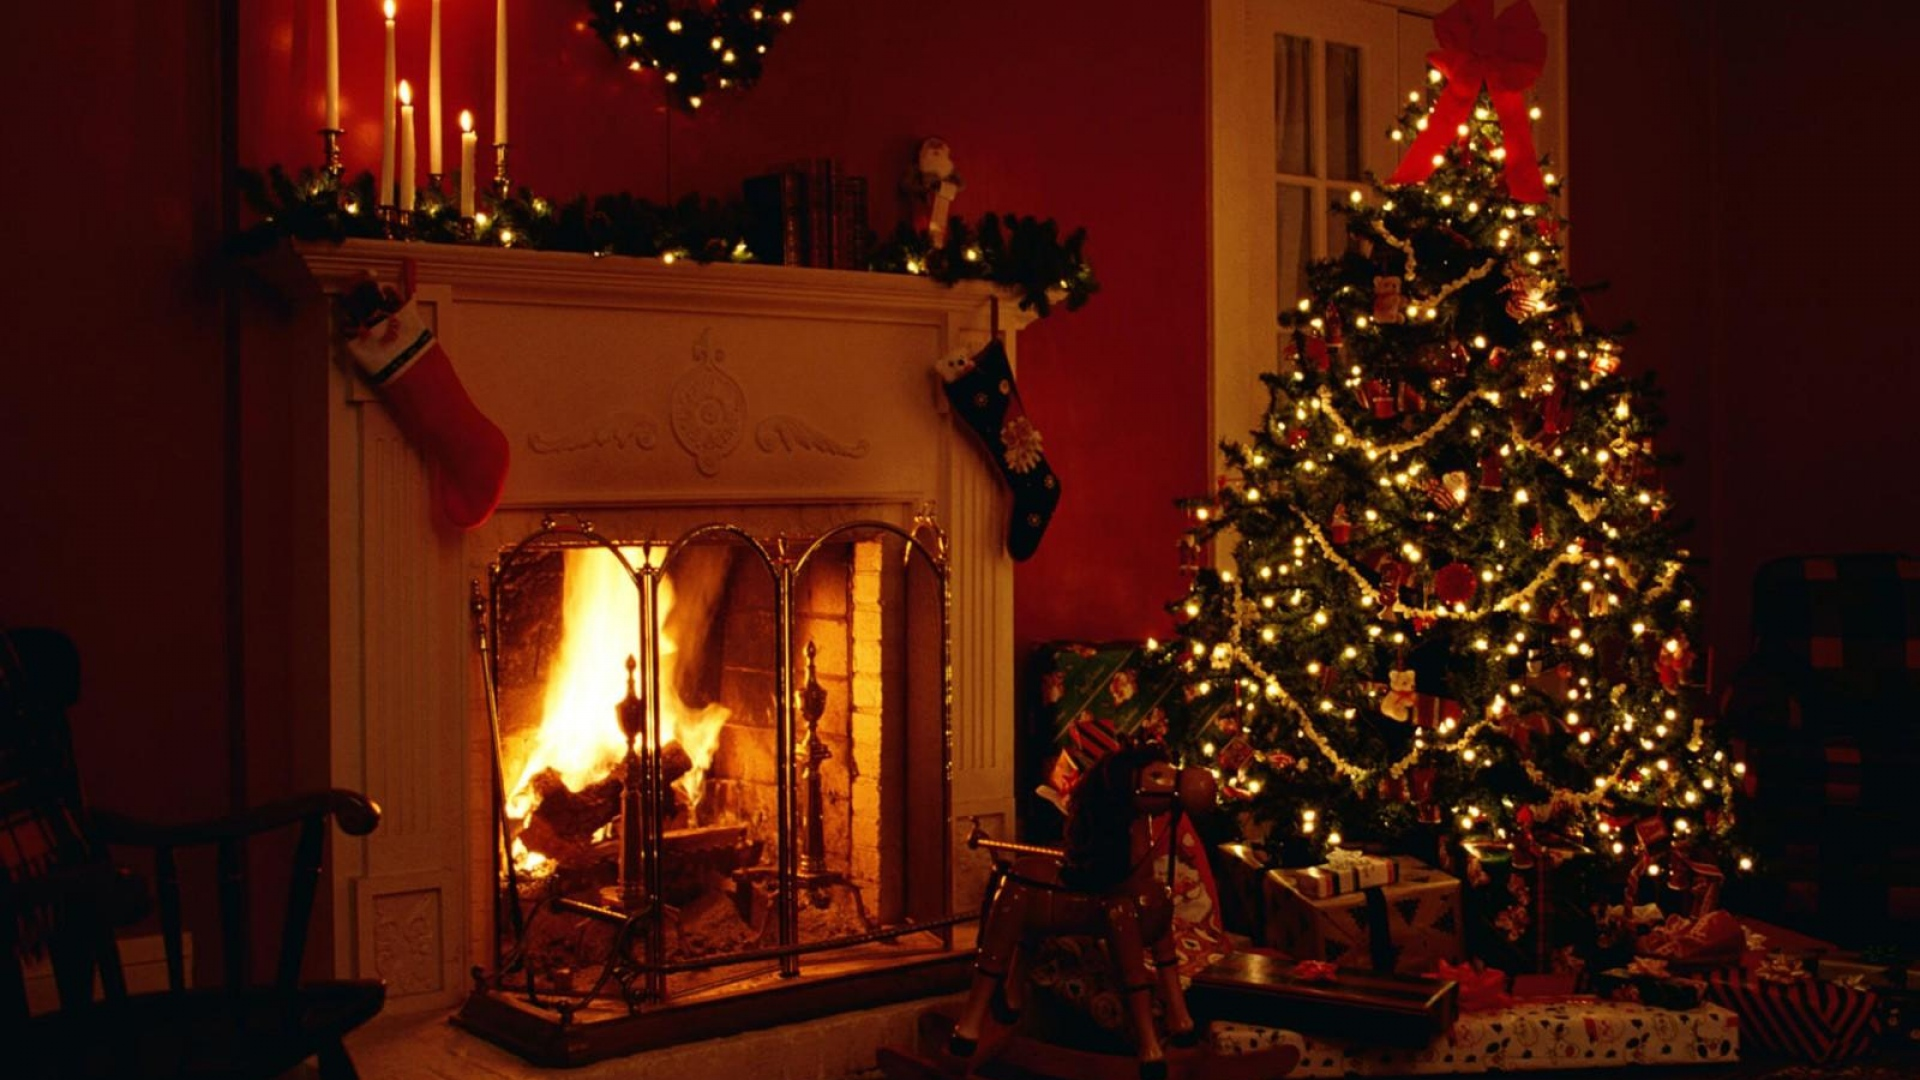 Download Wallpaper 1920x1080 Christmas, Holiday, Fireplace